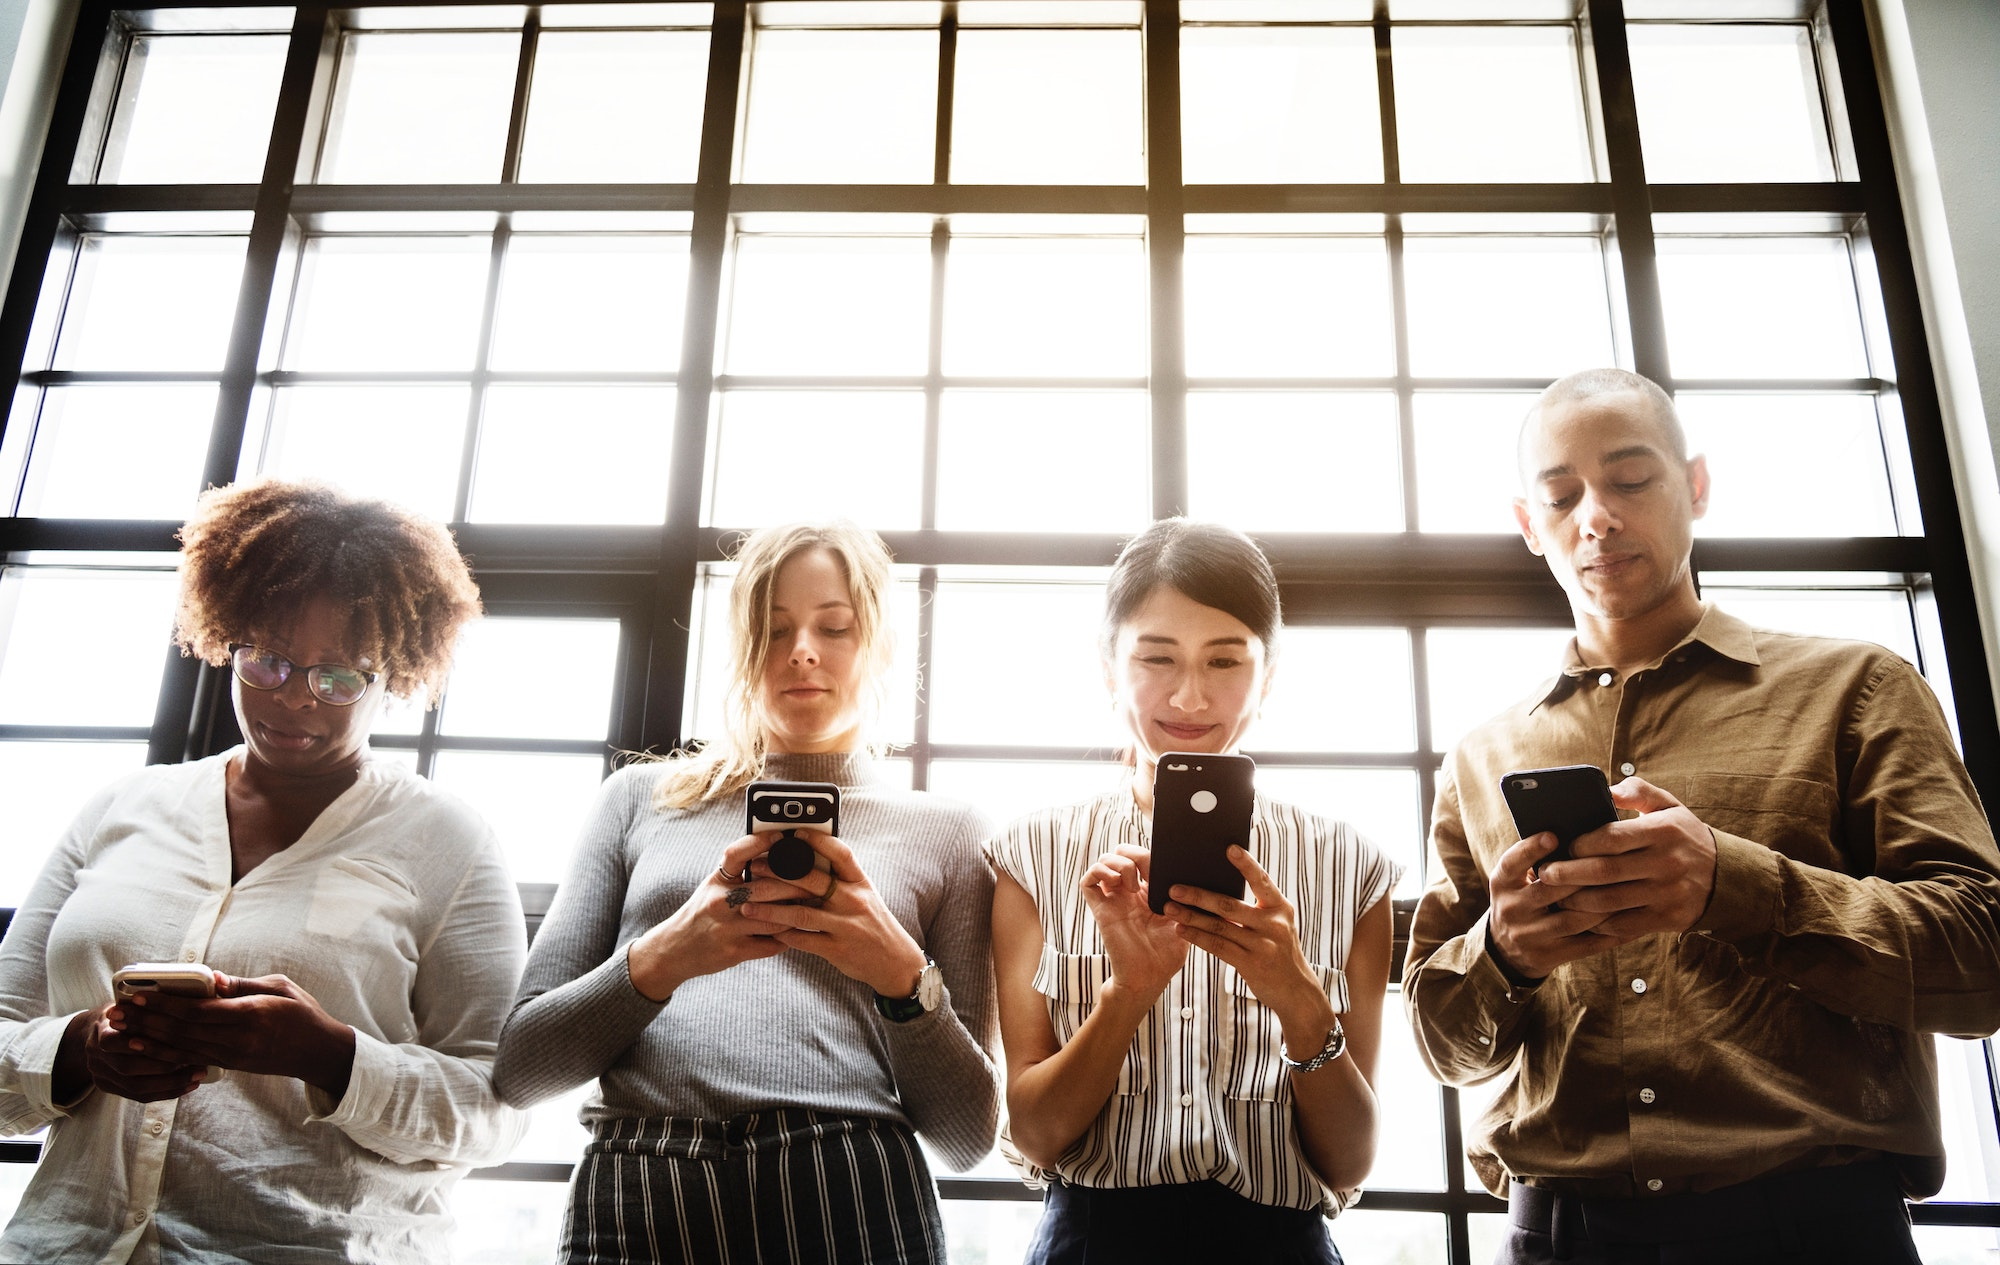 Four people browse smartphones backlit by window panes